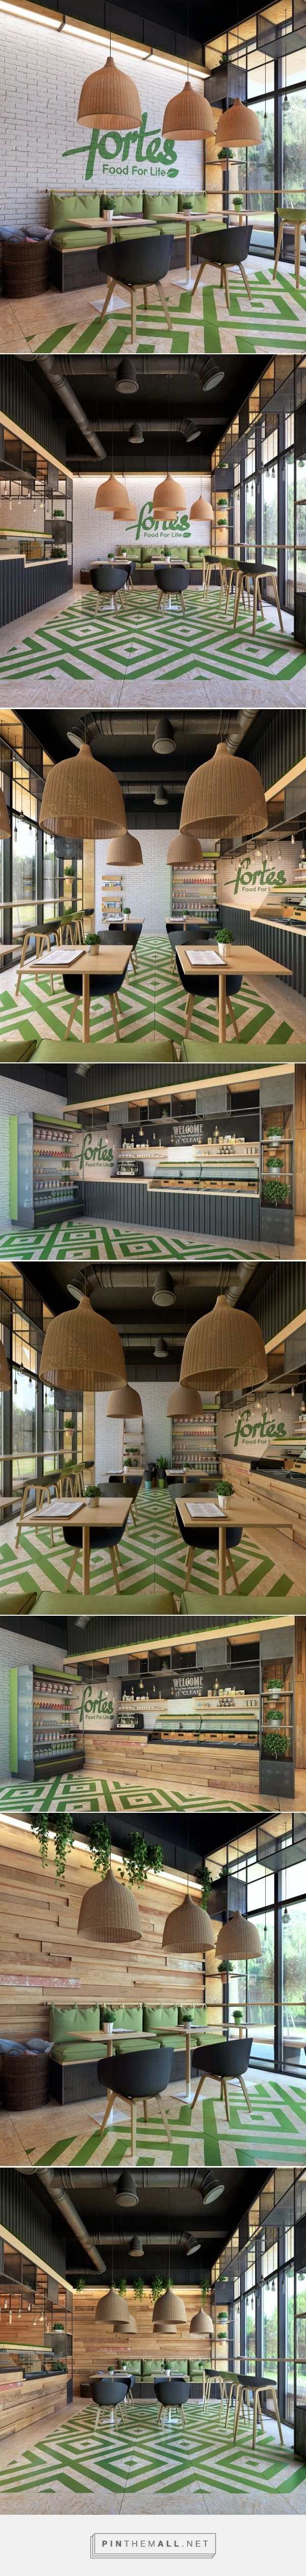 Clean food cafe Fortes on Behance - created via https://pinthemall.net